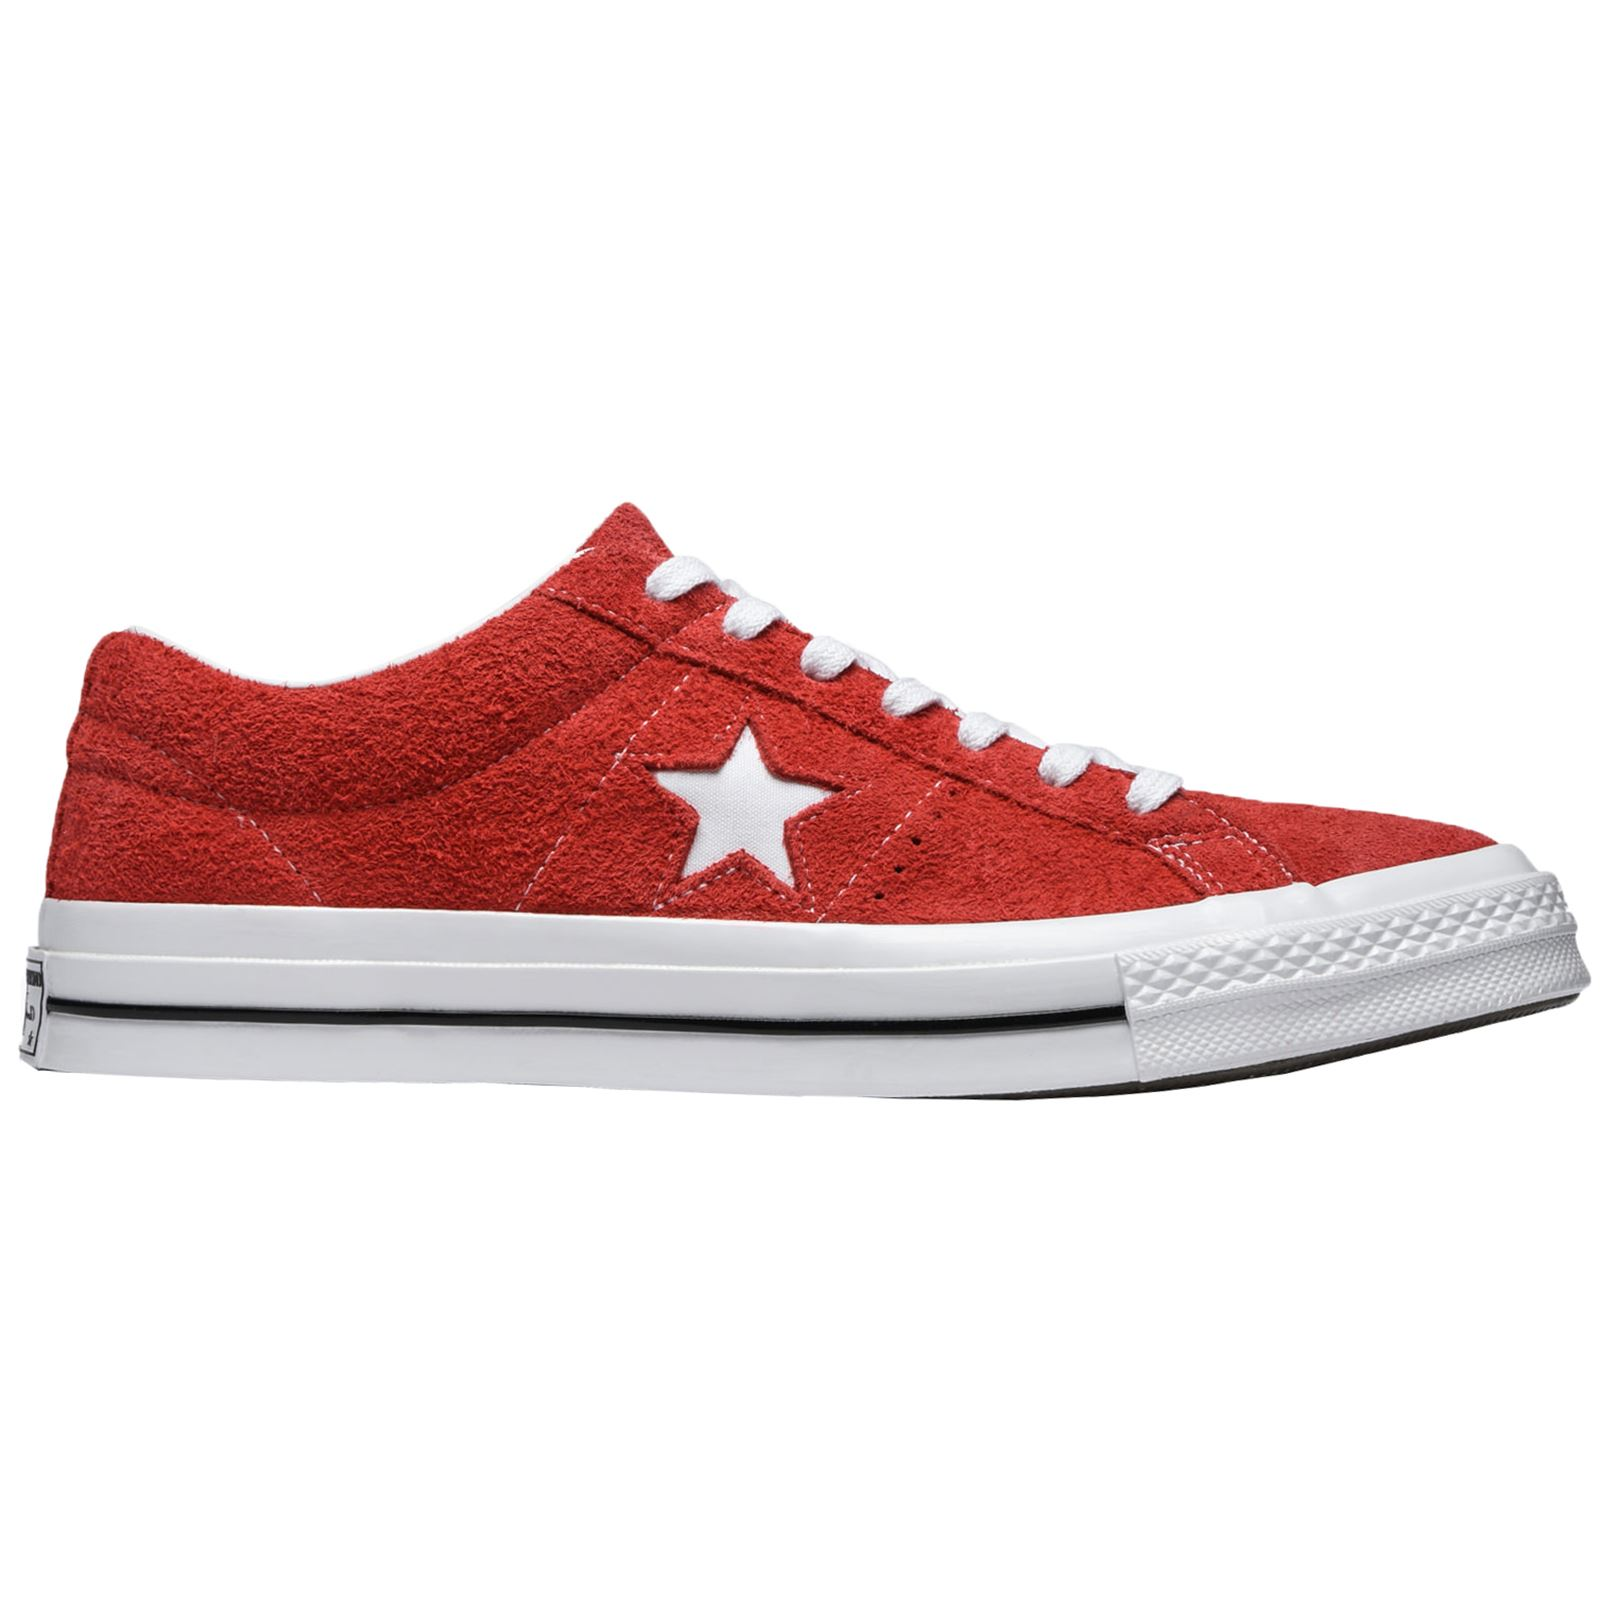 7337c63a1a3b Converse One Star Ox Red White Mens Suede Casual Low-top Sneakers Trainers